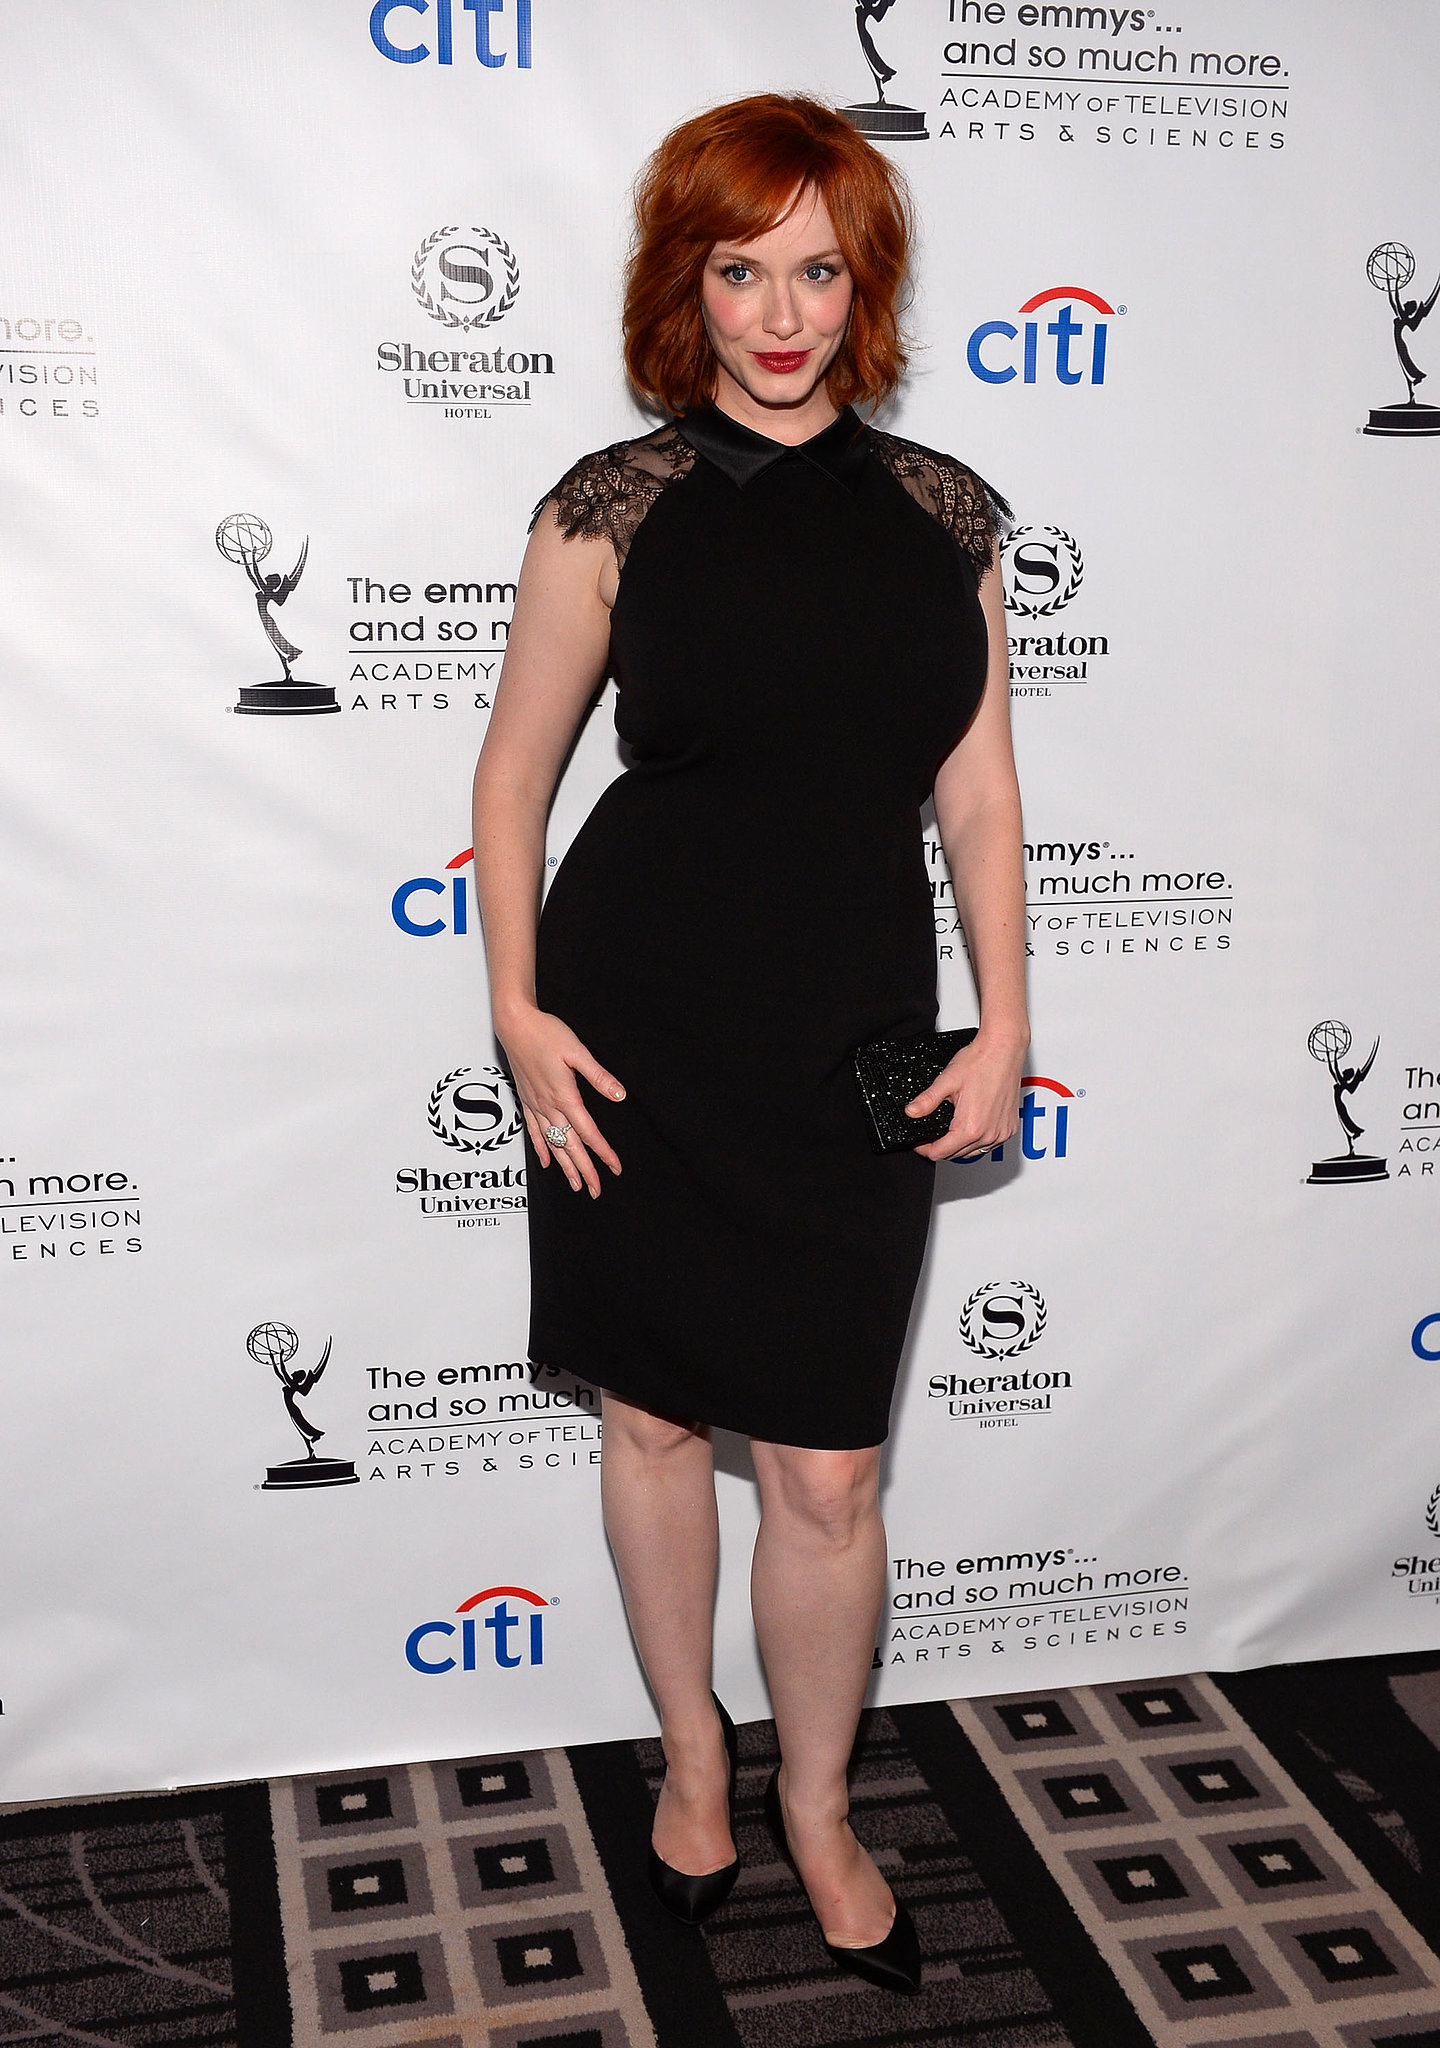 Christina Hendricks wore an LBD for the Emmys cocktail party.